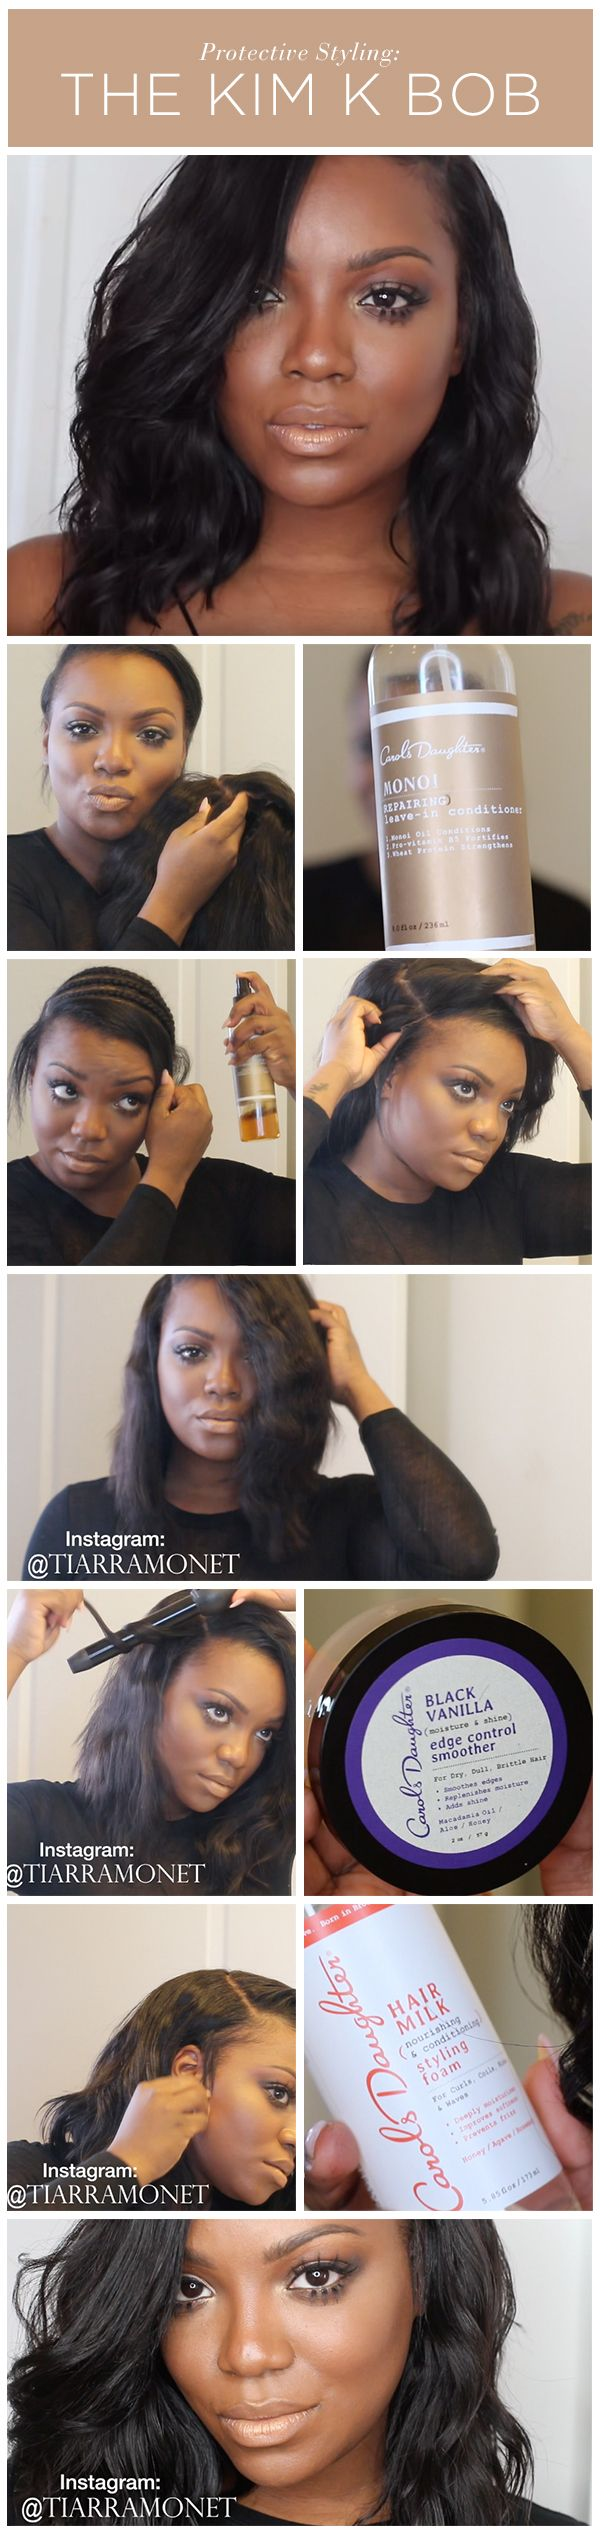 The Kim K Bob | The Easiest Protective Style for Natural Hair